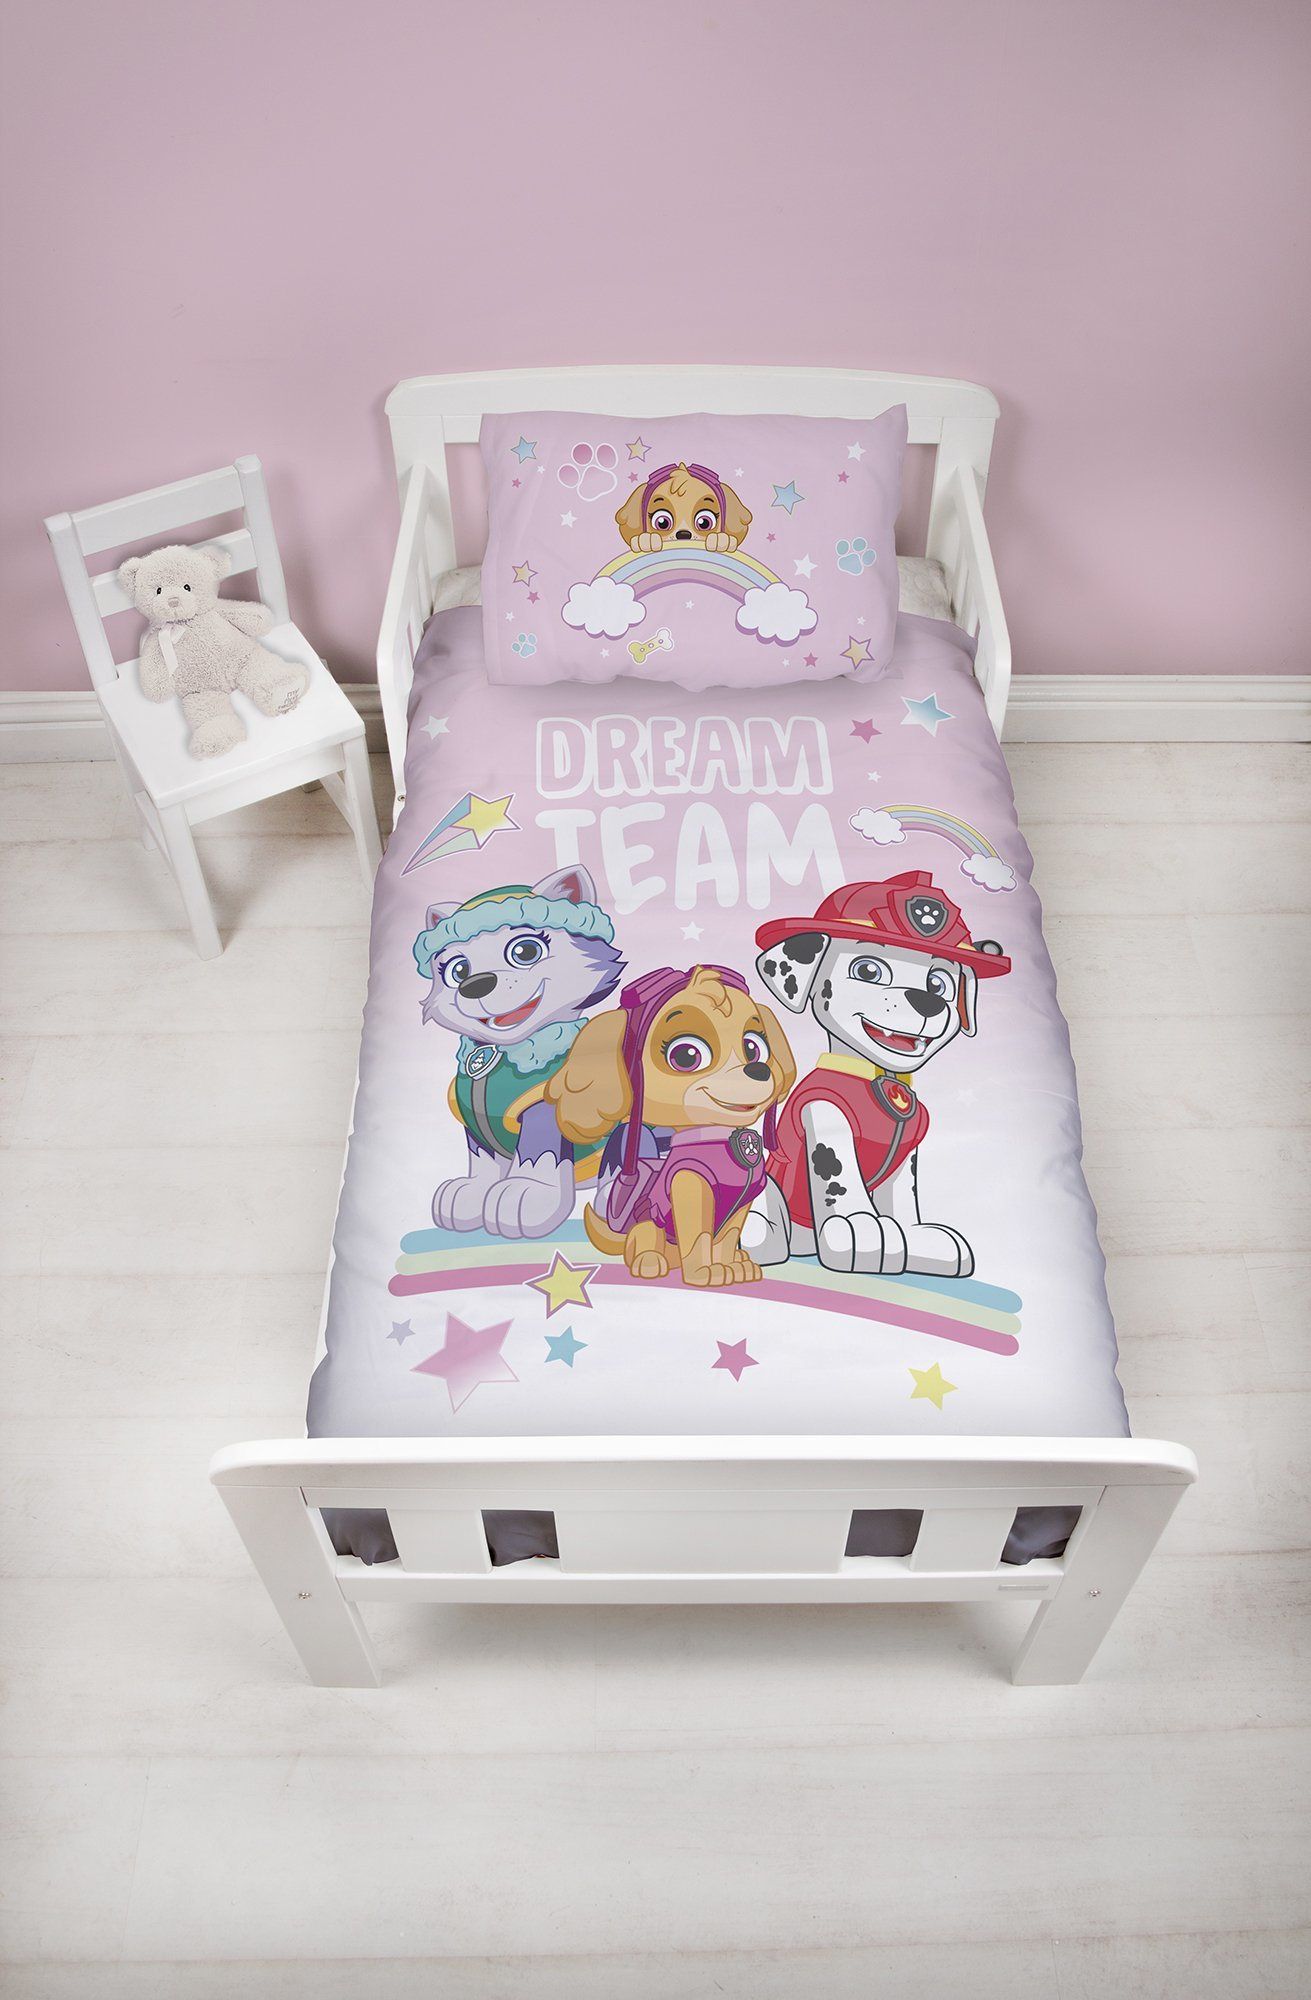 paw patrol dekbedovertrek 120x150 dream team koalabedding. Black Bedroom Furniture Sets. Home Design Ideas